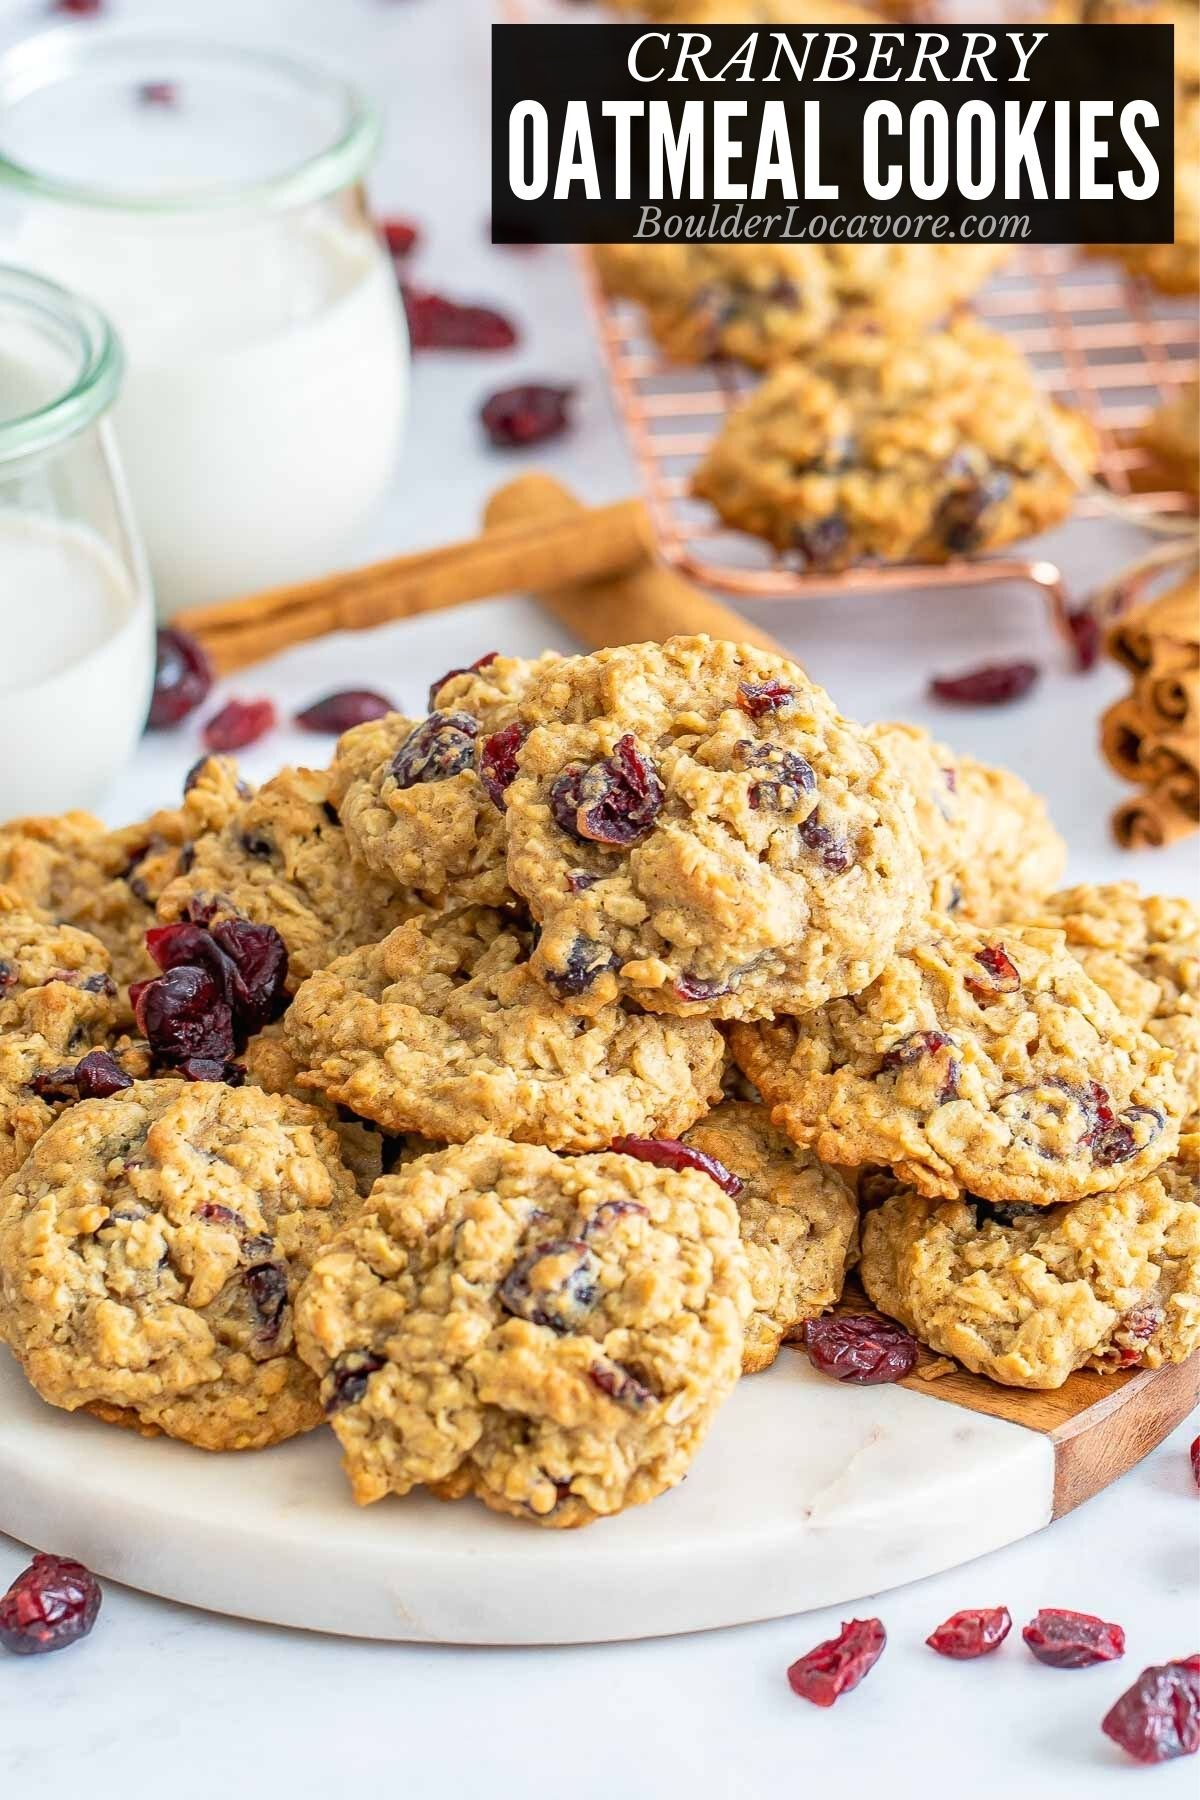 CRANBERRY OATMEAL COOKIES TITLE IMAGE